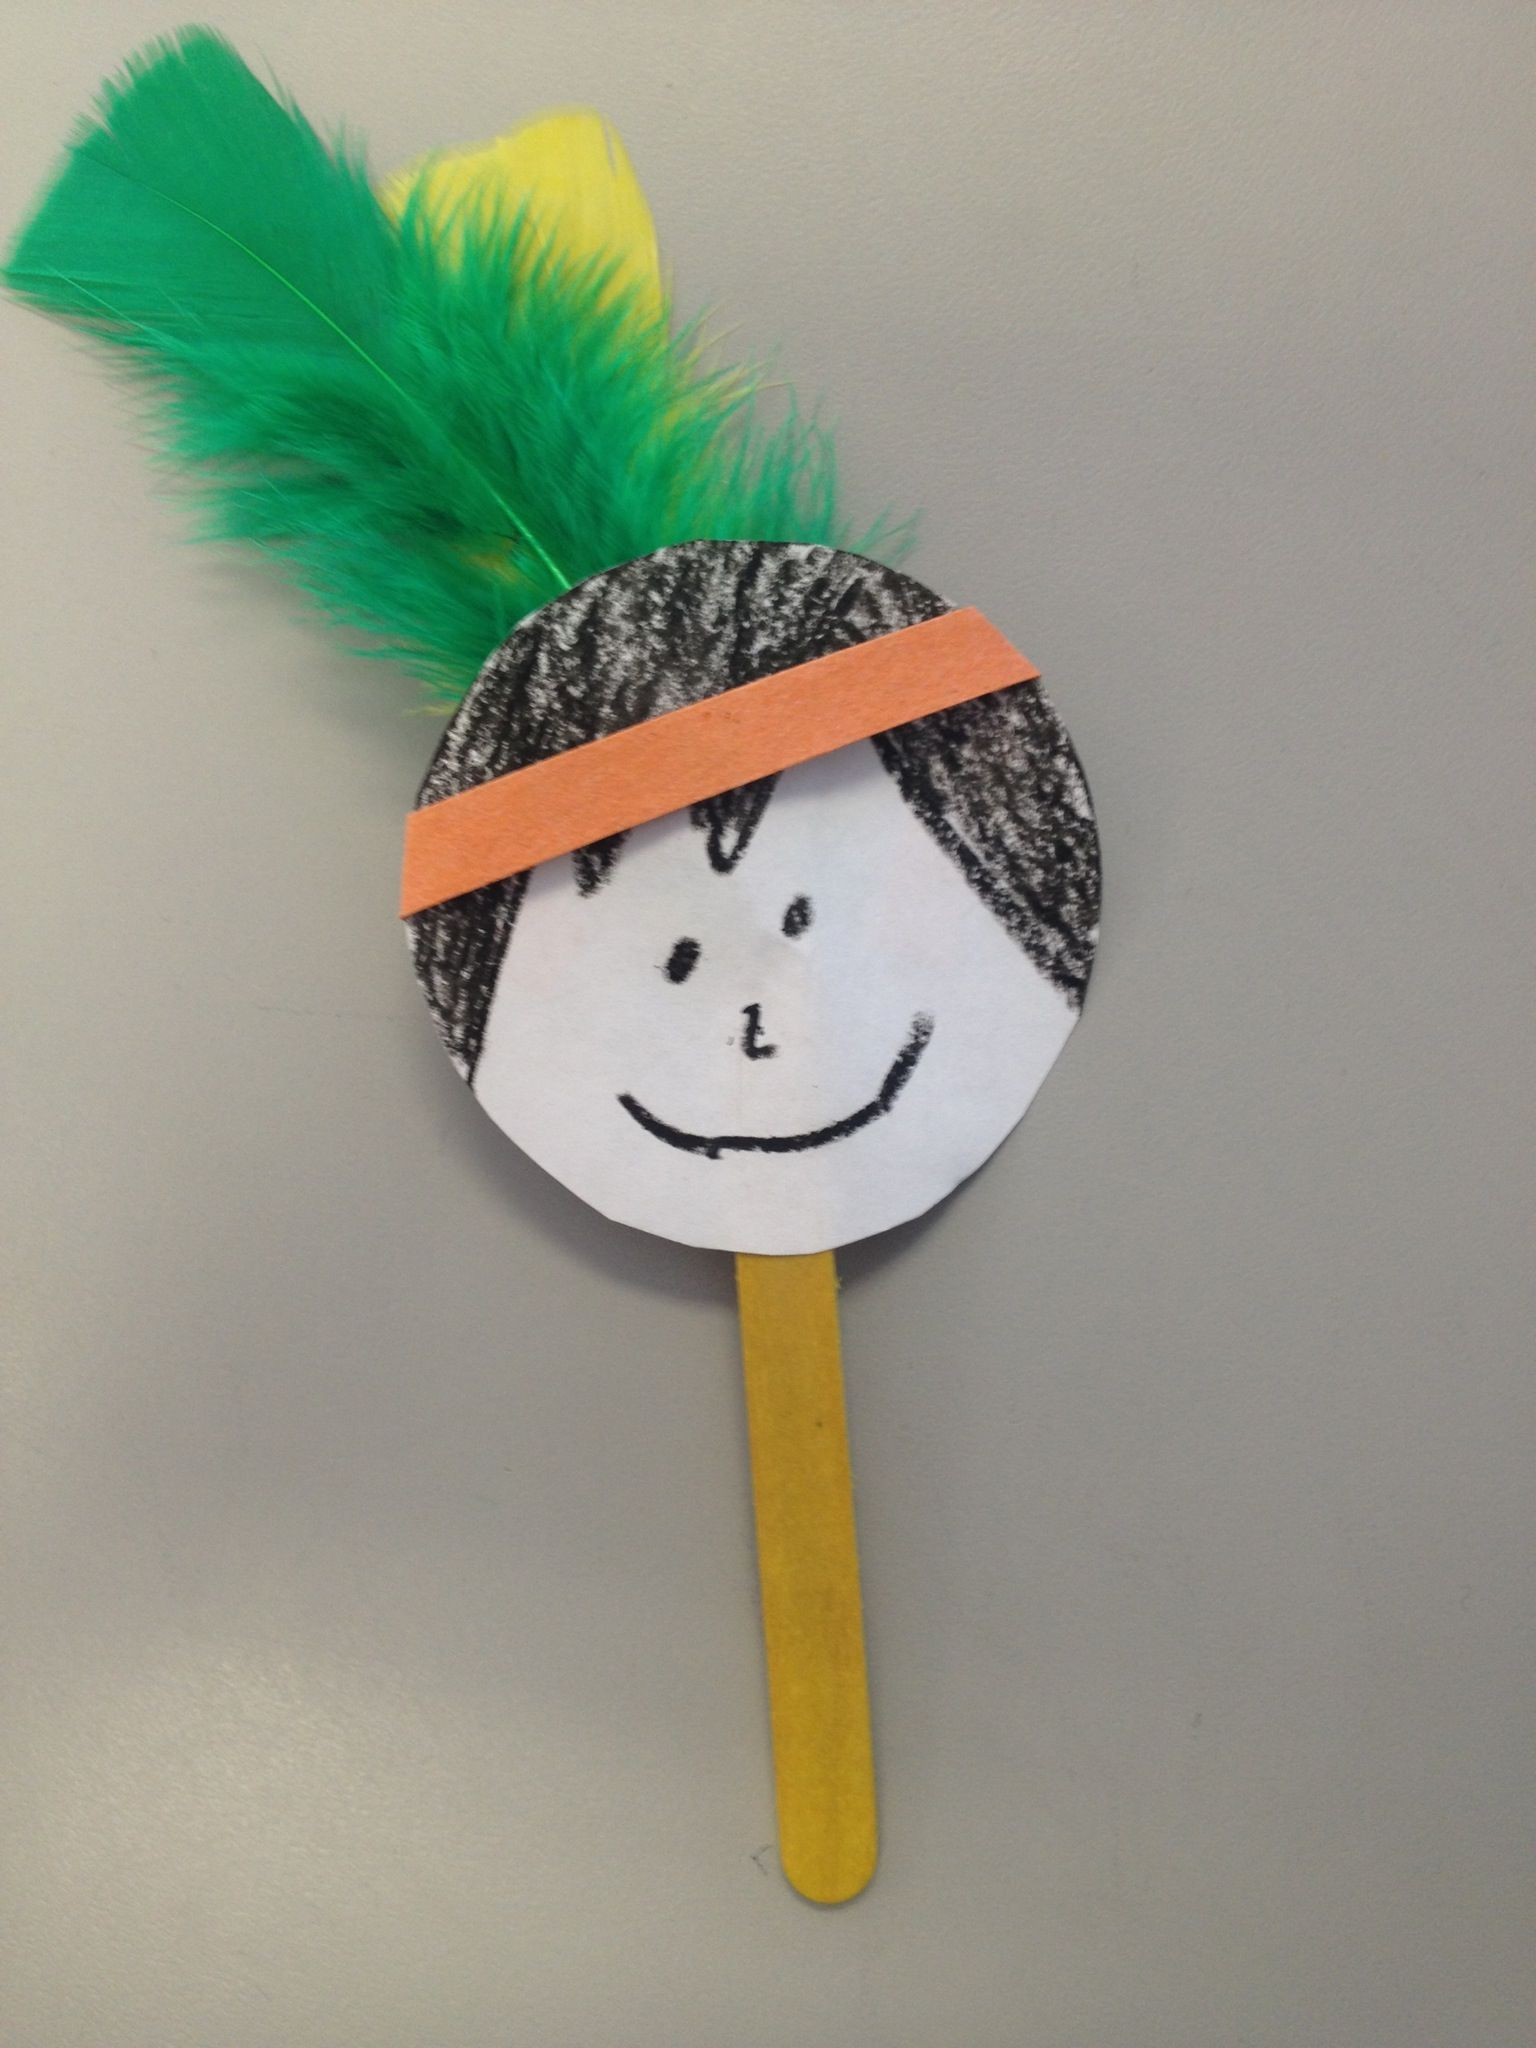 Native American Indian Popsicle Stick Puppet